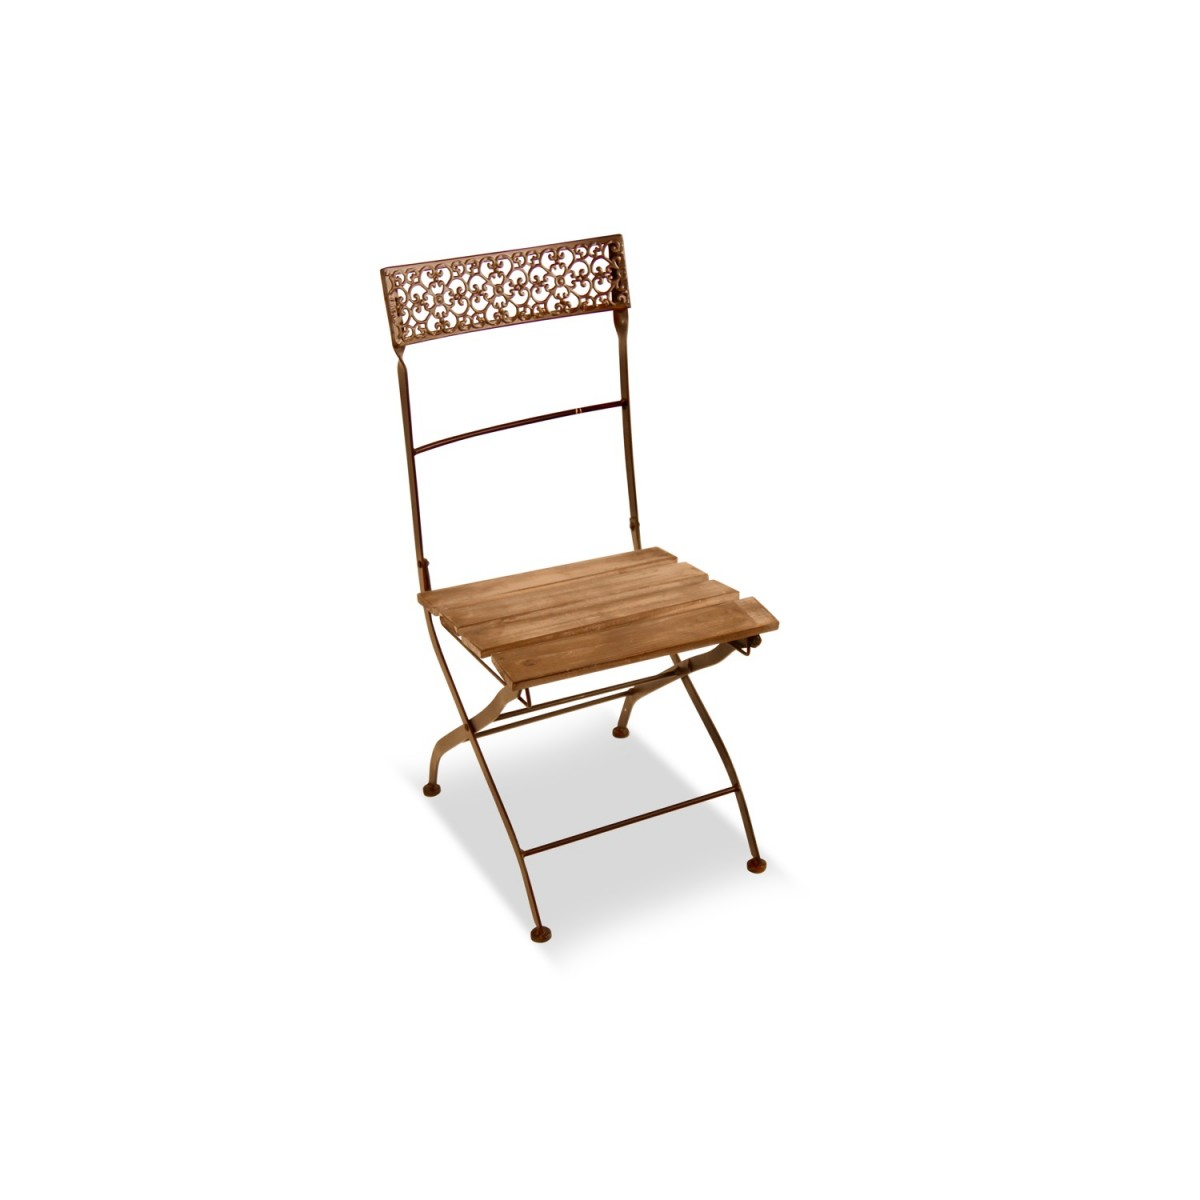 Chaise Bois Fer Forgé Marron 40x50.5x92.5cm